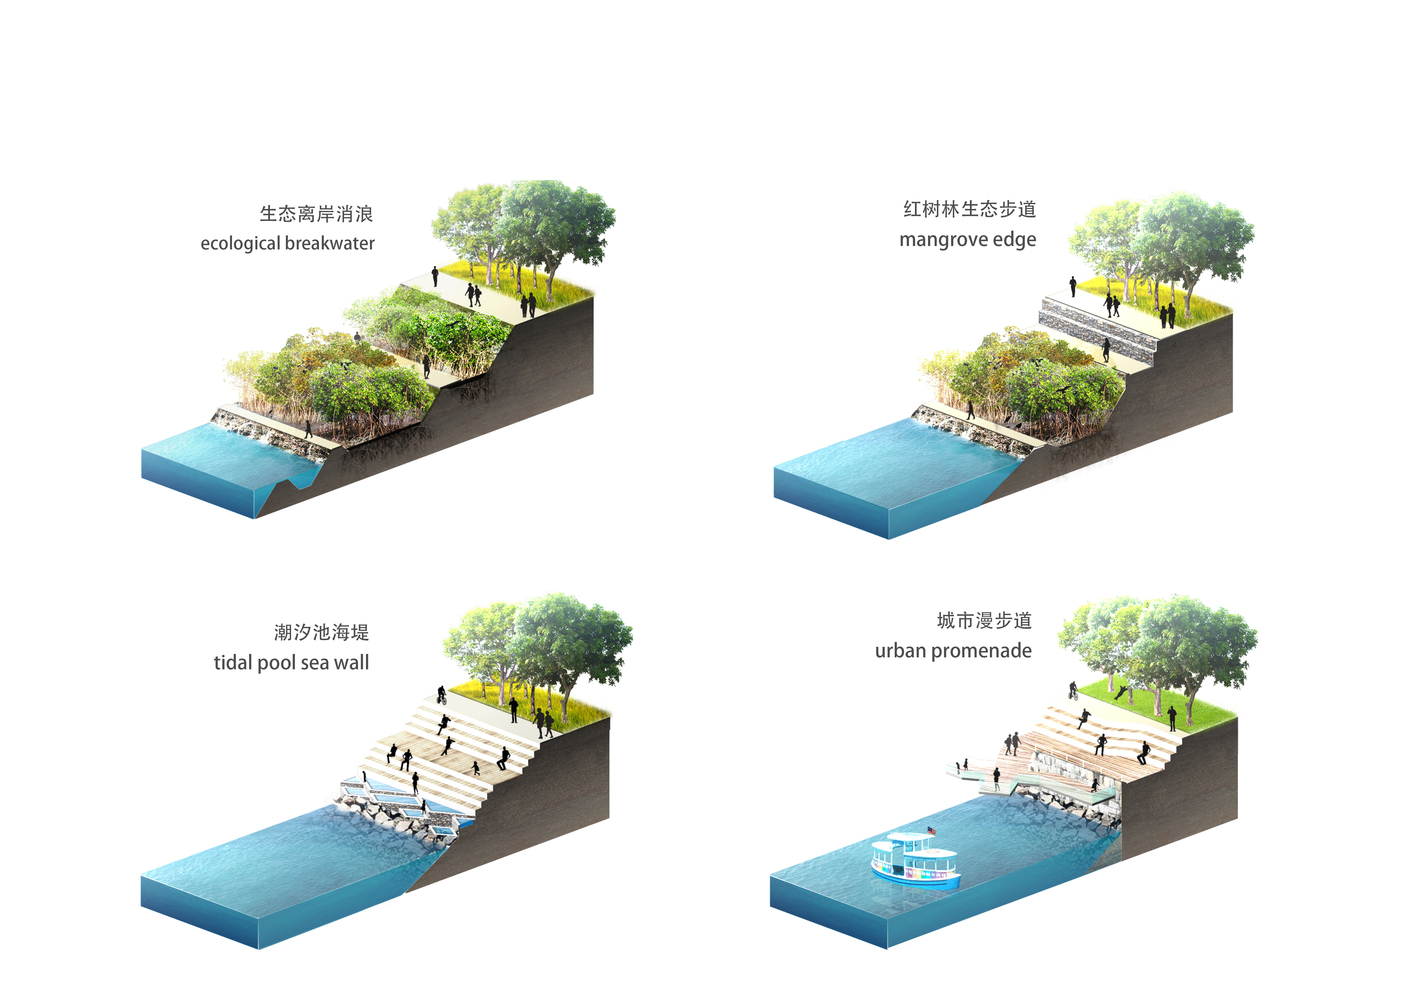 medium resolution of sasaki s forest city master plan in iskandar malaysia stretches across 4 islands section